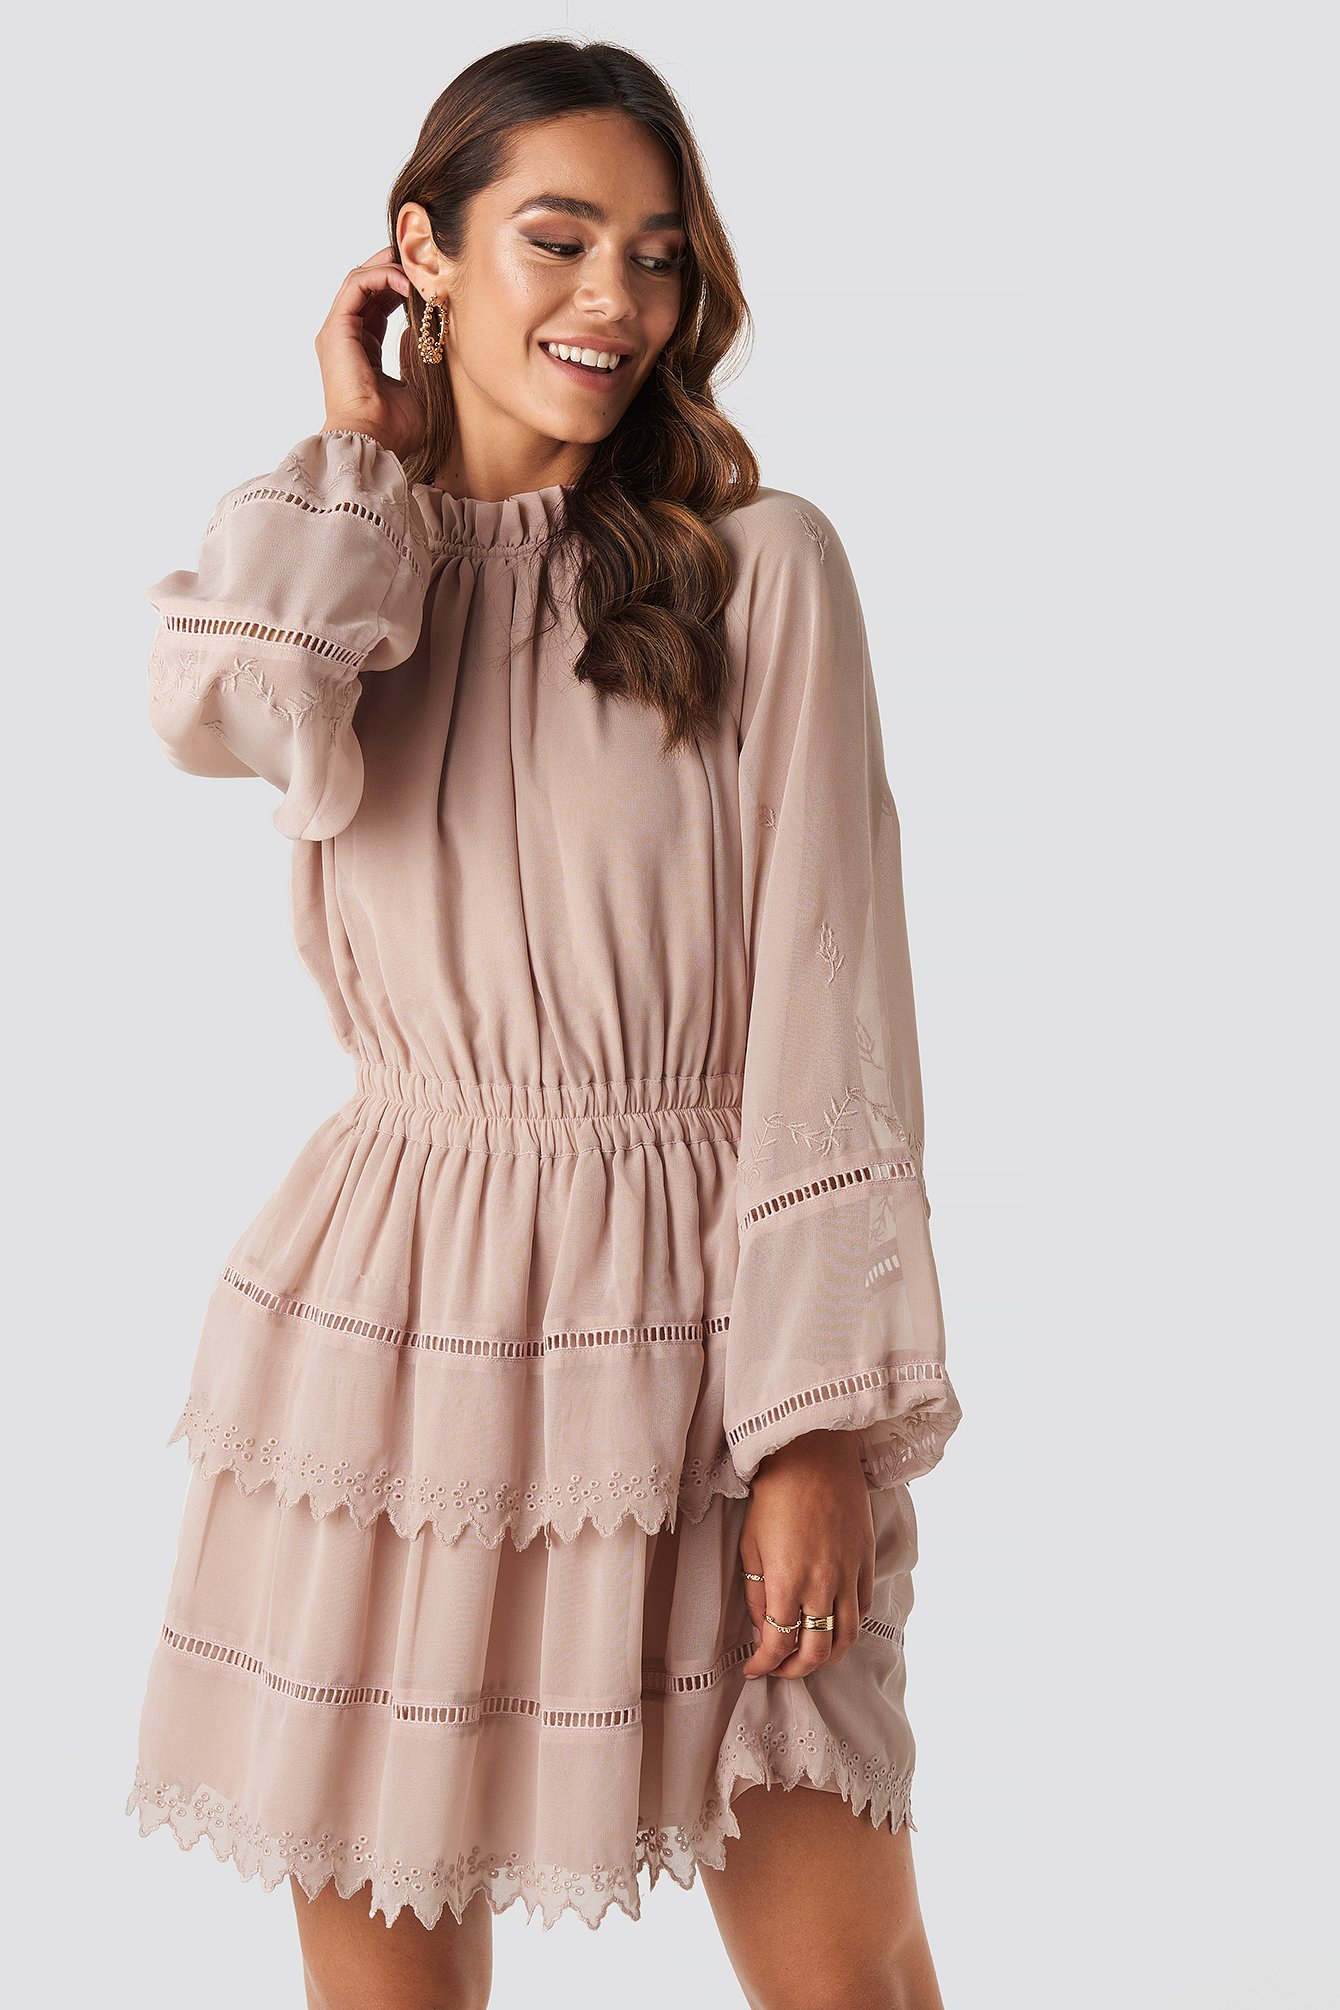 NA-KD Boho Embroidery Mini Dress - Pink